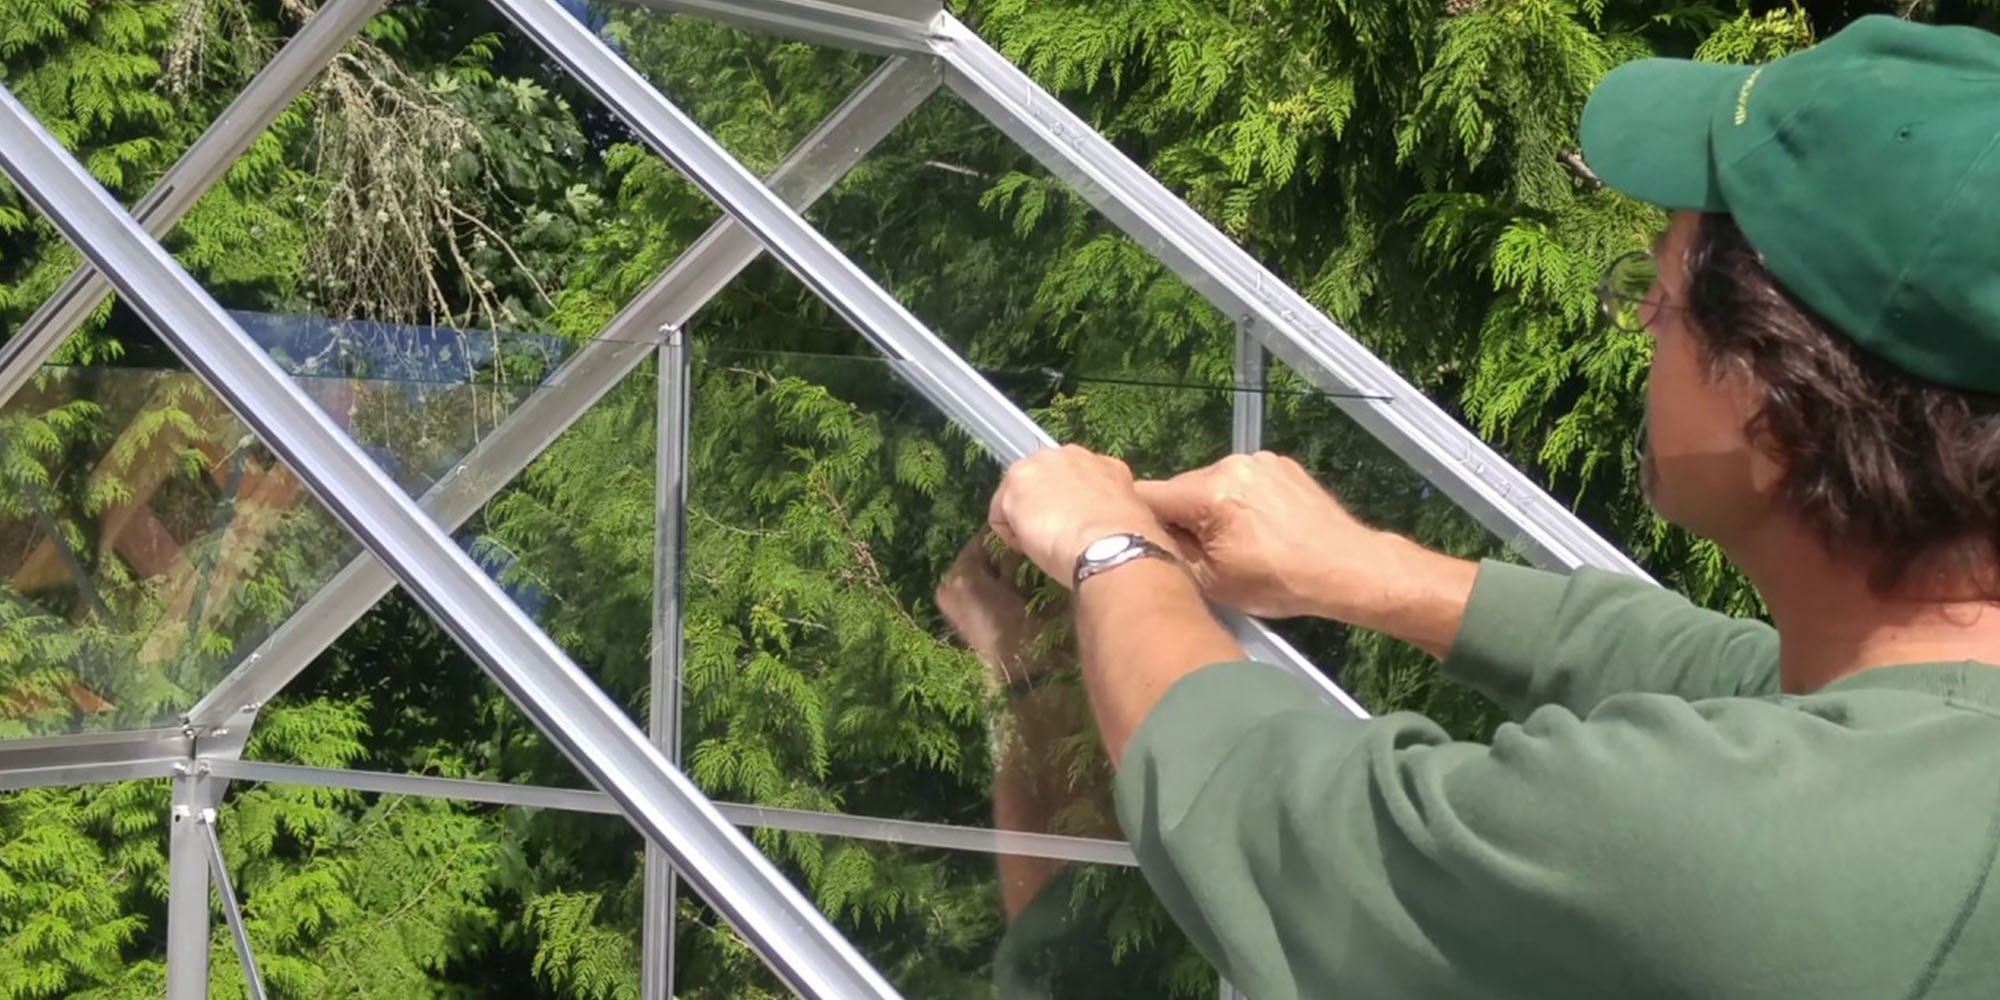 Cut Glass for Greenhouse